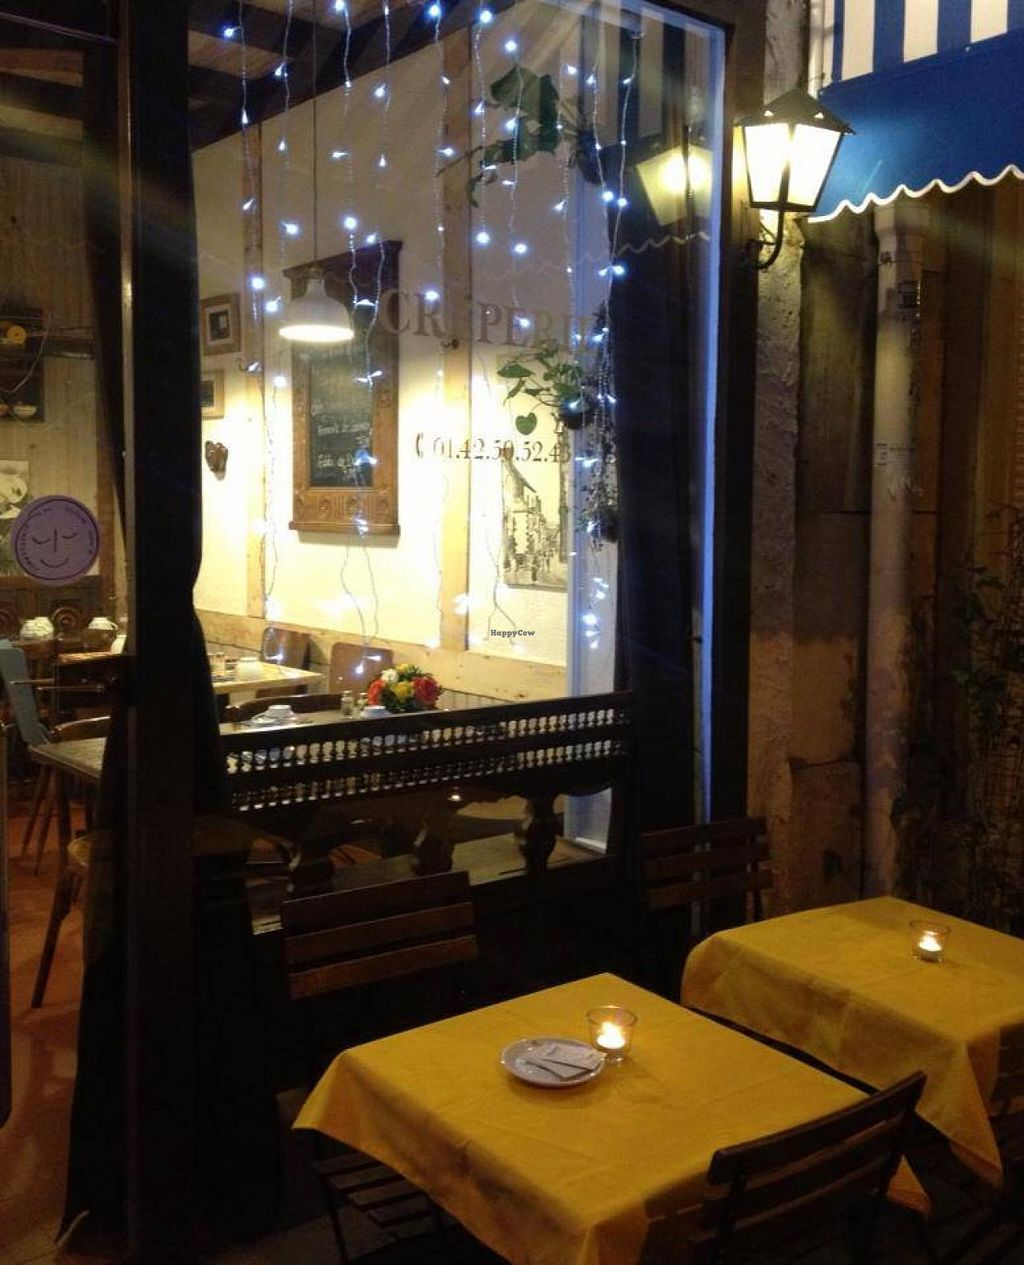 "Photo of Mad'eo  by <a href=""/members/profile/lafollia"">lafollia</a> <br/>Cosy, little crêperie. They have antique wooden Breton furniture and photos of their family in traditional dress on the walls <br/> February 25, 2015  - <a href='/contact/abuse/image/55930/94070'>Report</a>"